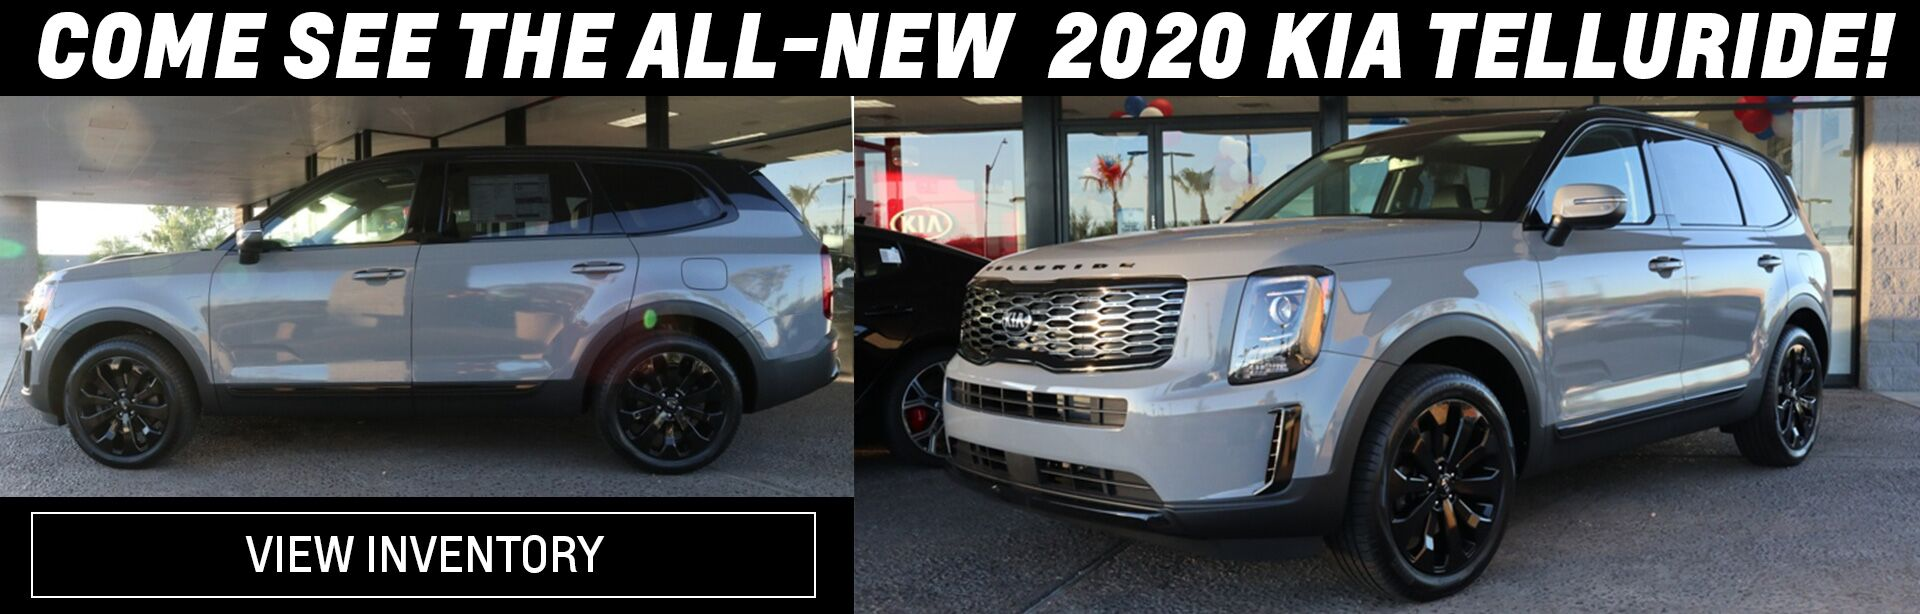 NOW AVAILABLE - Kia Telluride